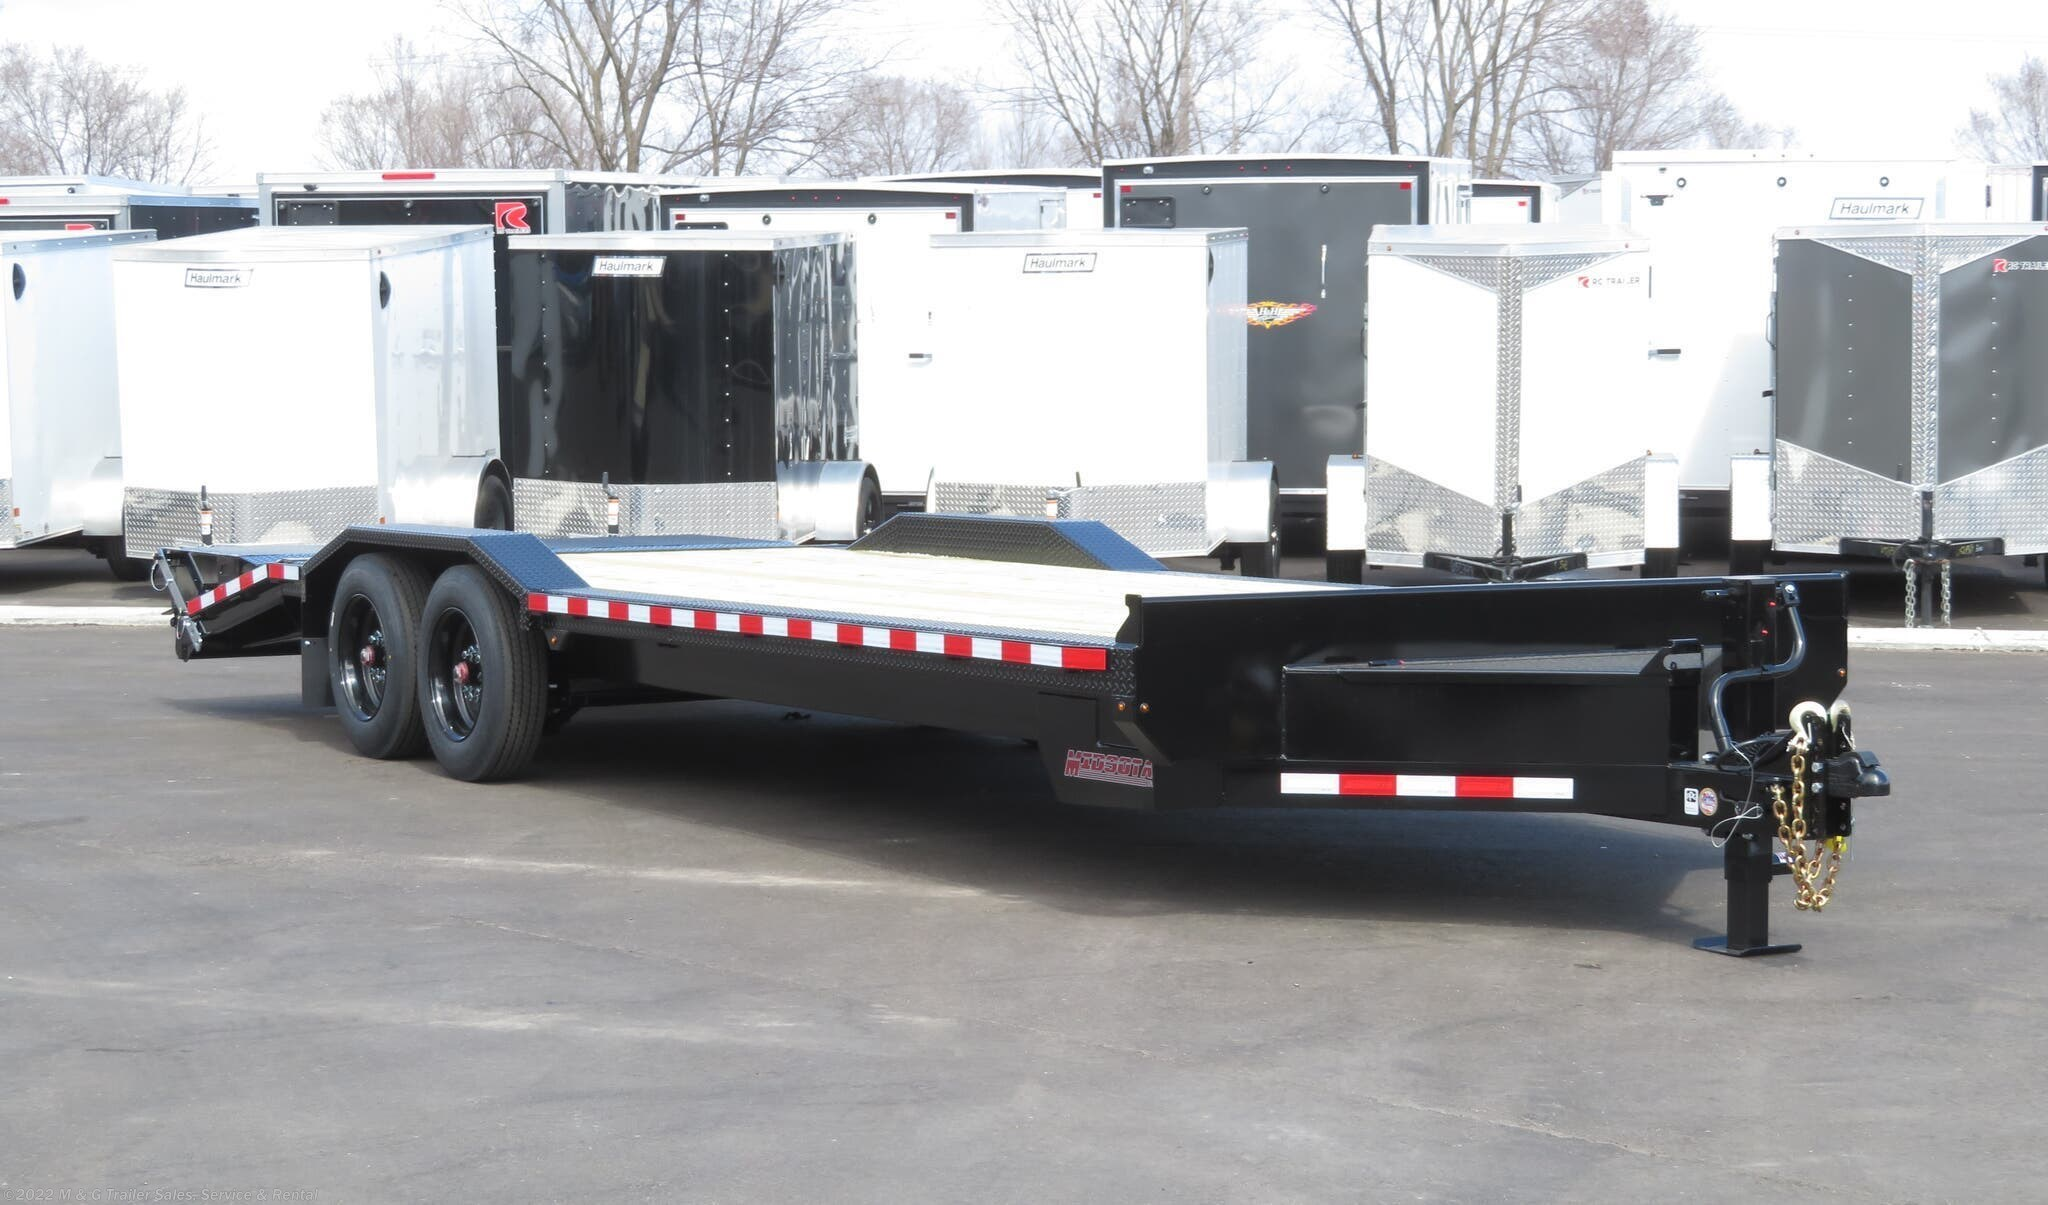 2021 Midsota STWB-24 Wide Body Skid Loader Trailer - Black - Stock #001671